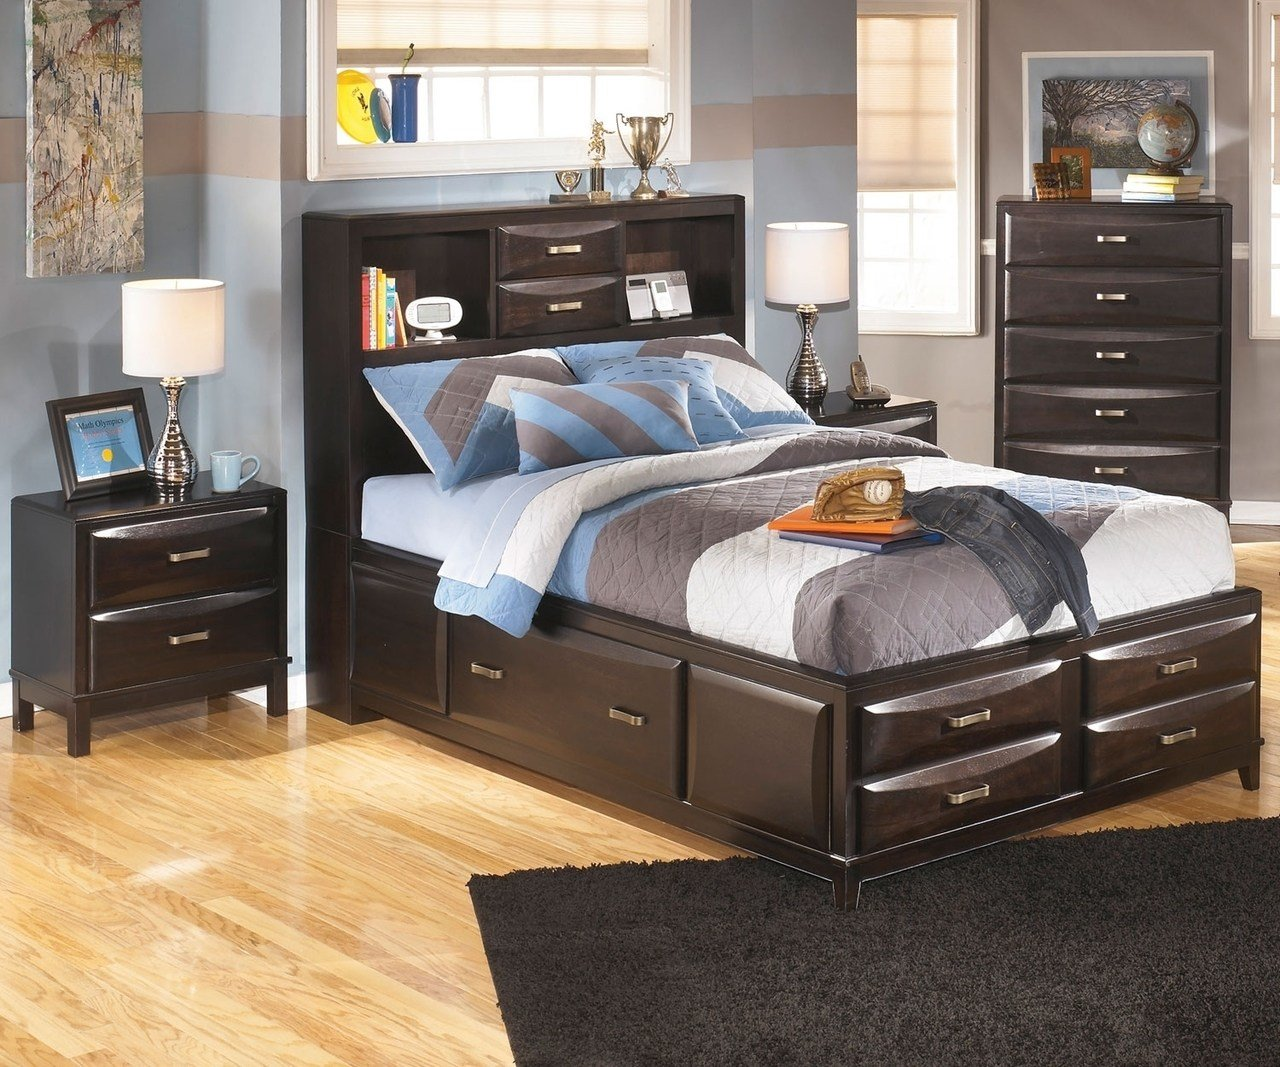 Best Kira B473 Full Size Bookcase Storage Bed Ashley Kids With Pictures